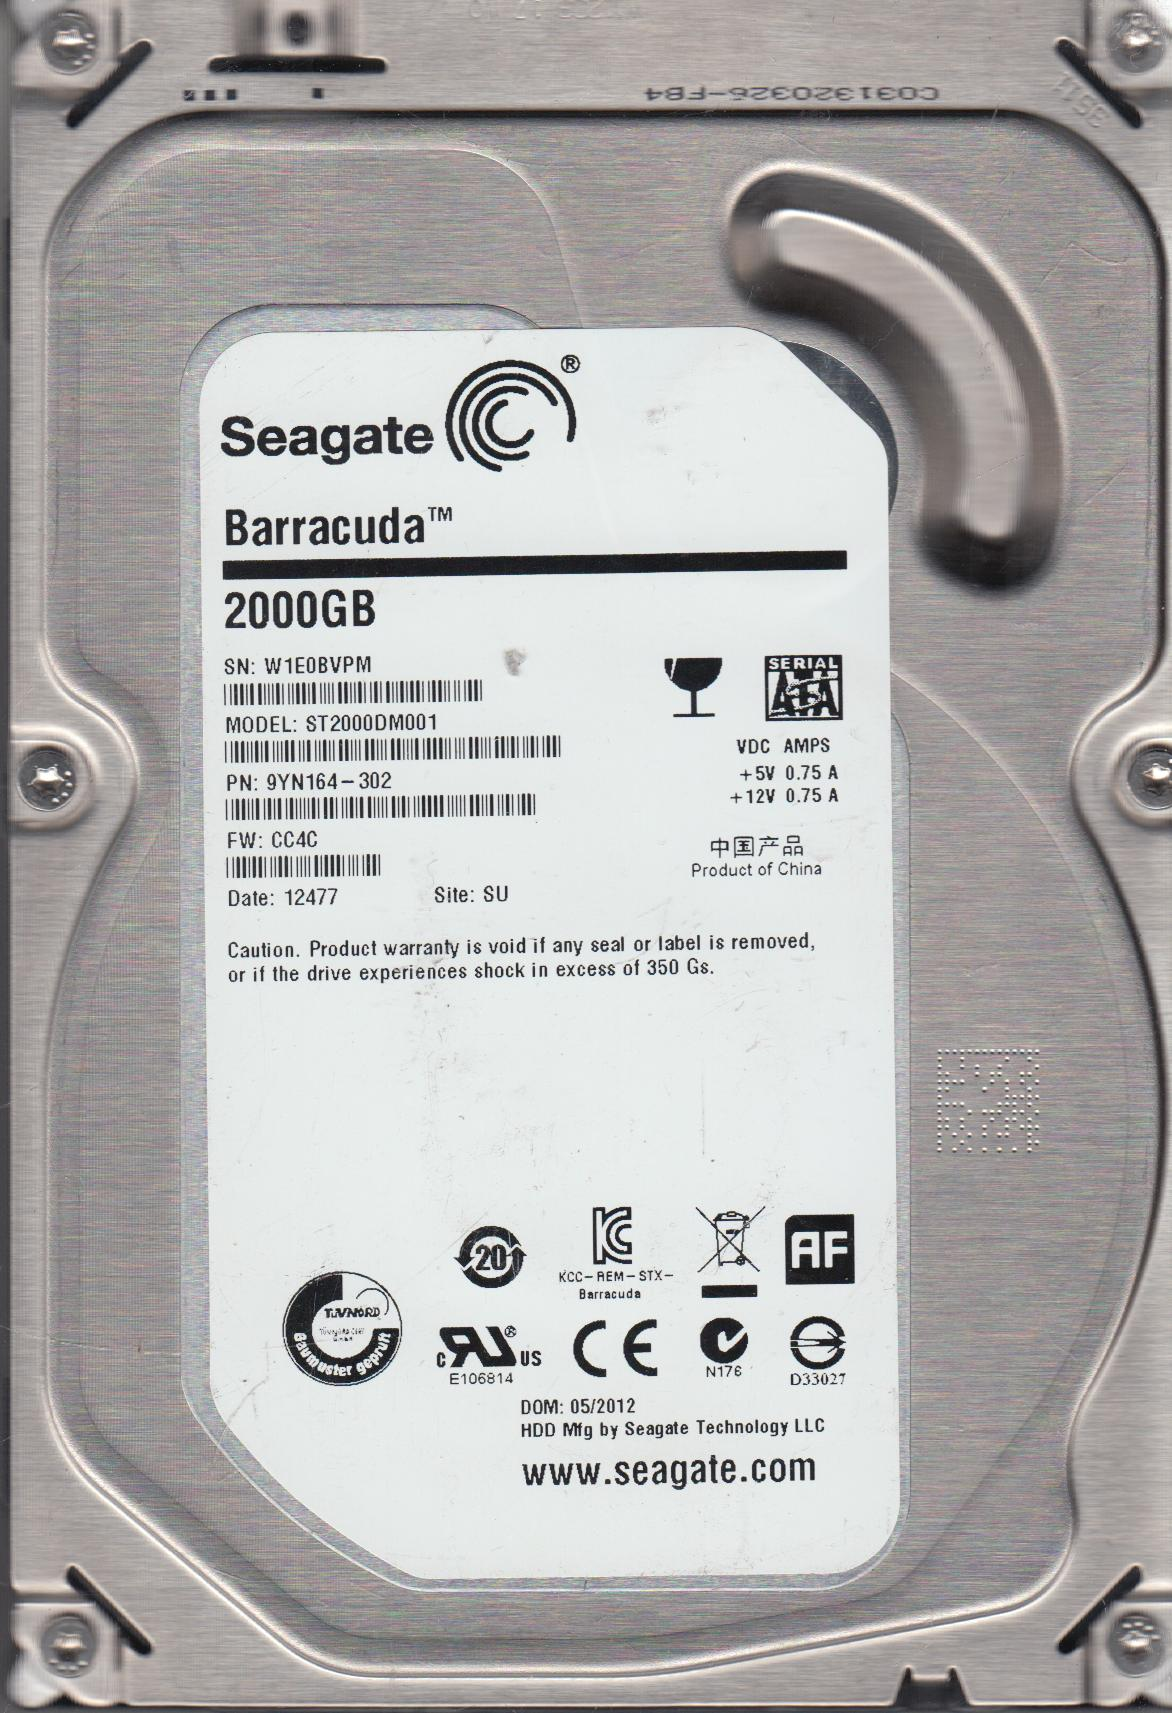 ST2000DM001, W1E, SU, PN 9YN164-302, FW CC4C, Seagate 2TB SATA 3.5 Hard Drive by Seagate